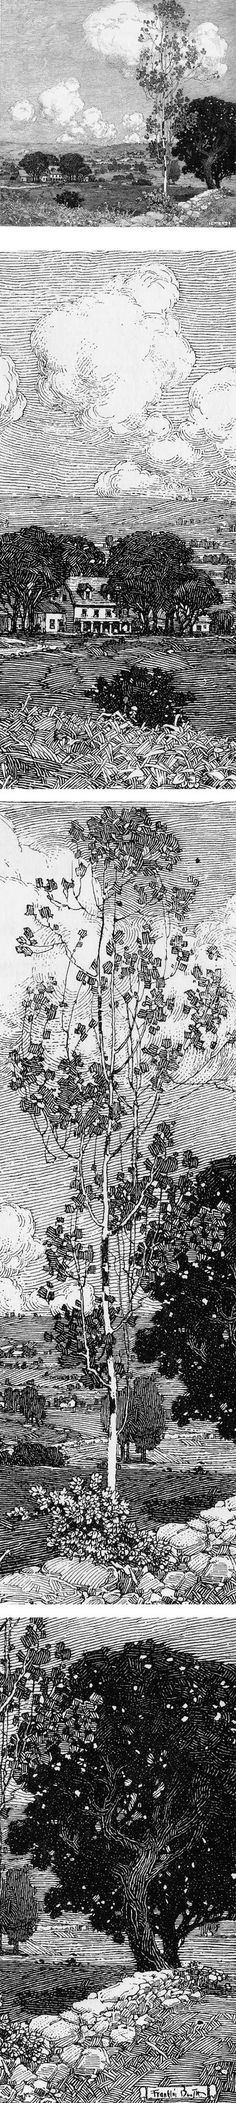 Eye Candy for Today: Franklin Booth pen and ink landscape drawing